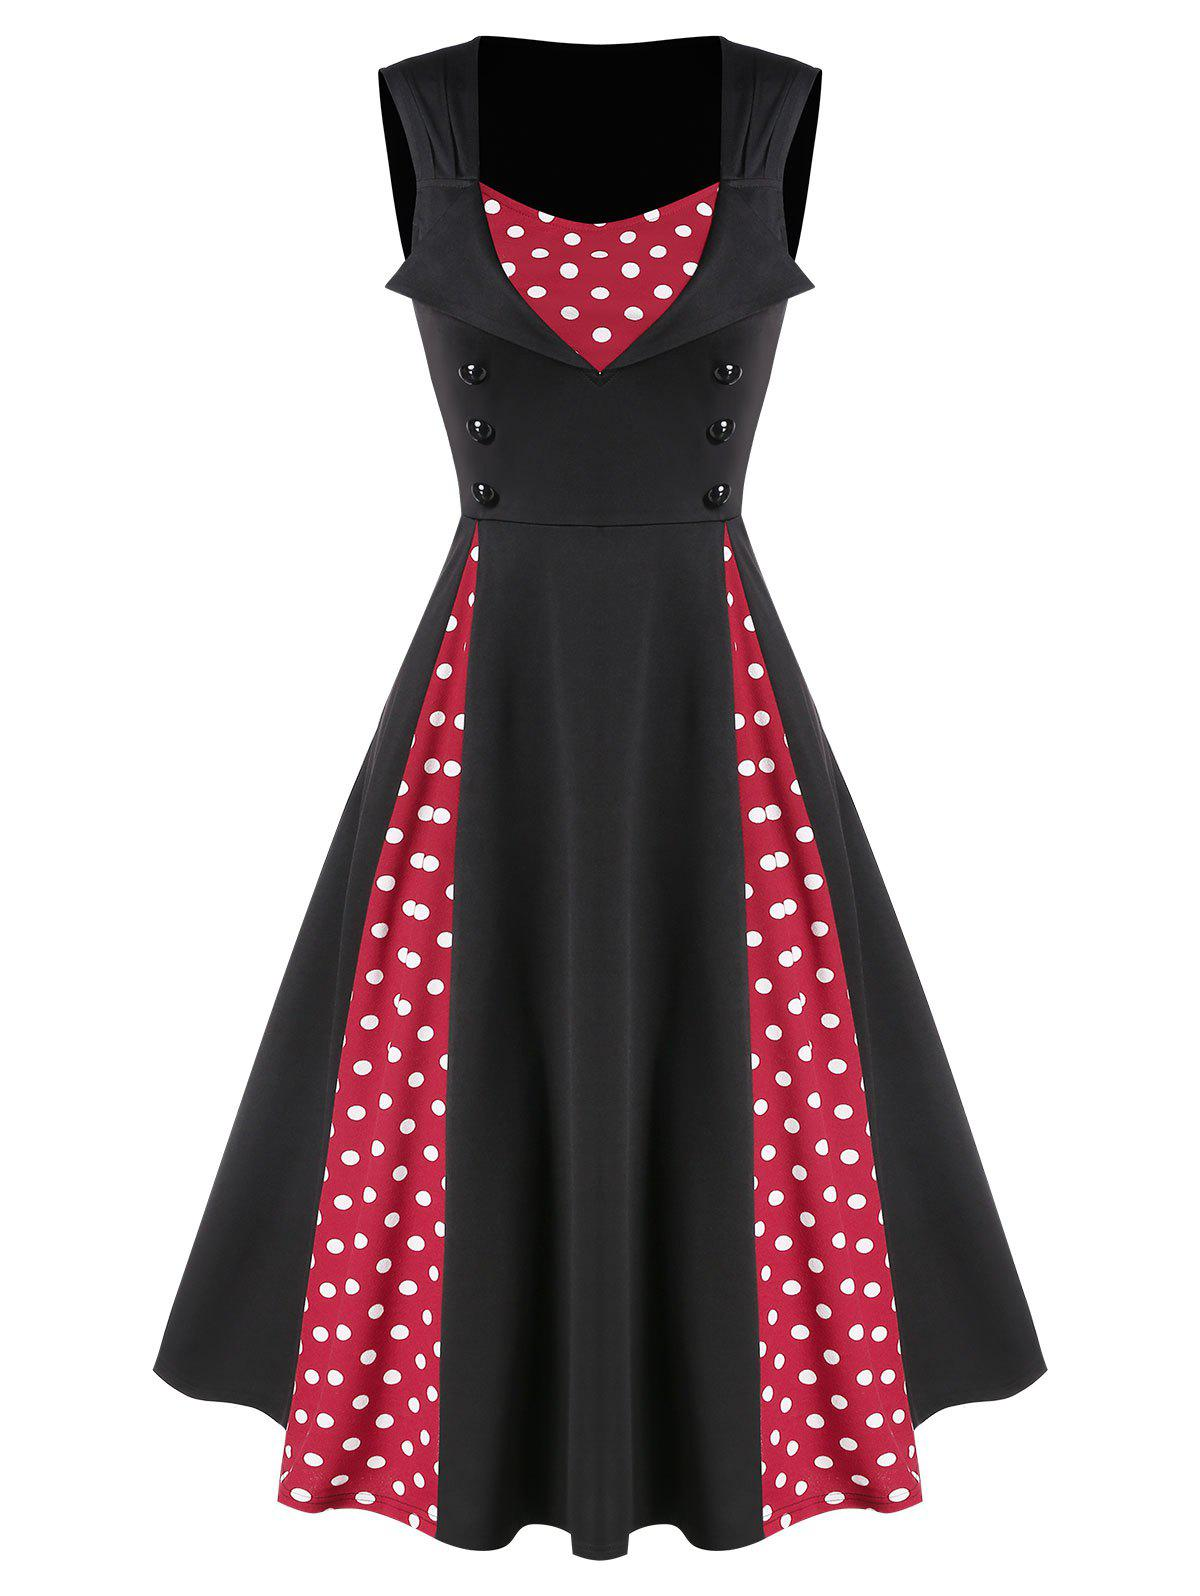 Chic Polka Dot Panel Button Fit And Flare Dress